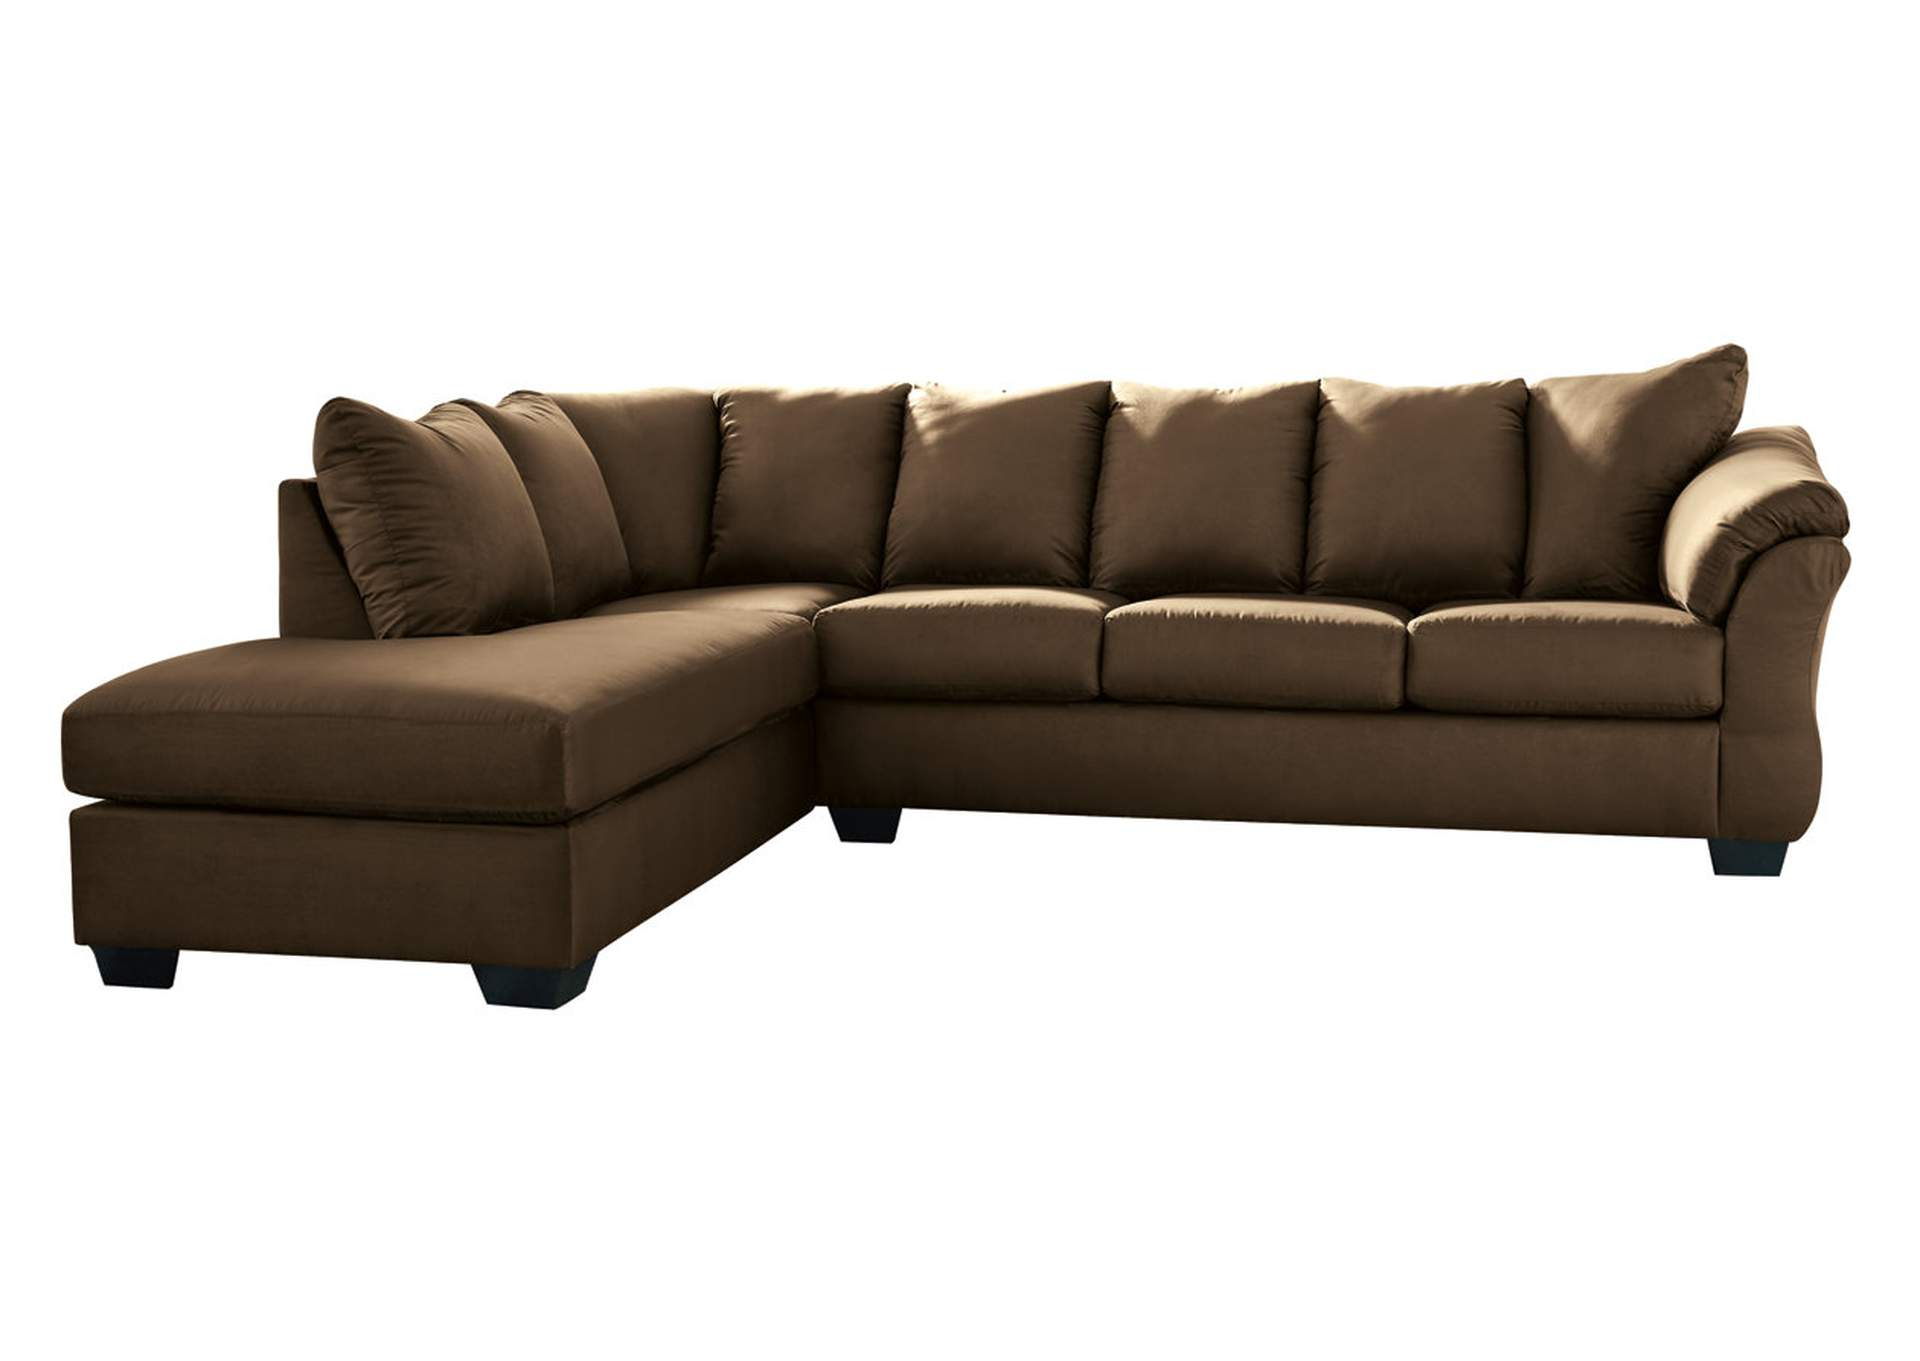 Darcy Cafe LAF Chaise Sectional,Signature Design By Ashley